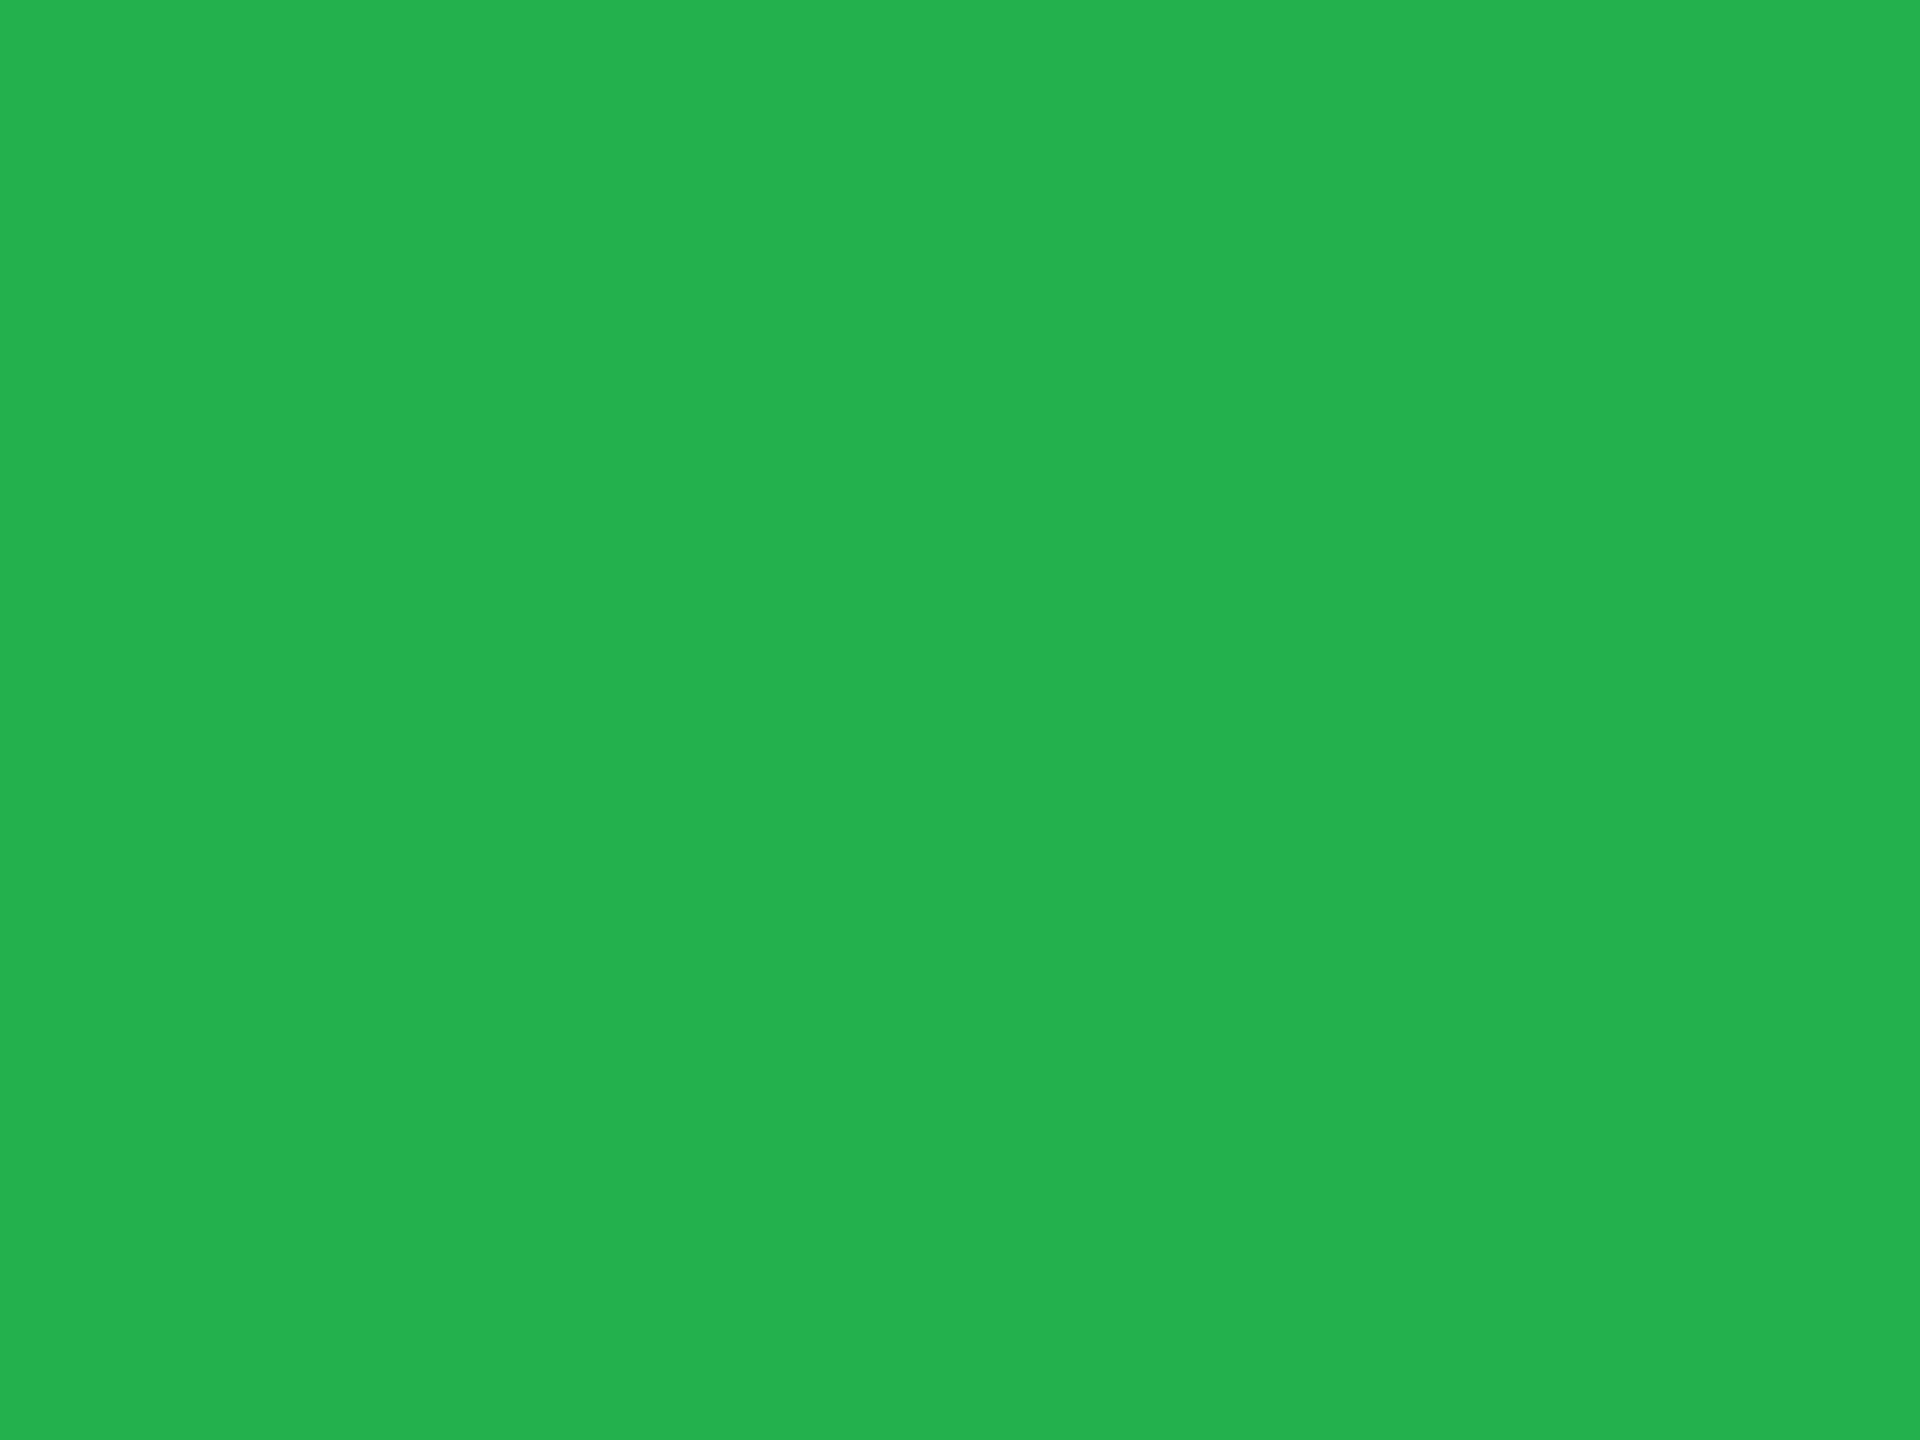 Solid Green Background Free Stock Photo - Public Domain Pictures